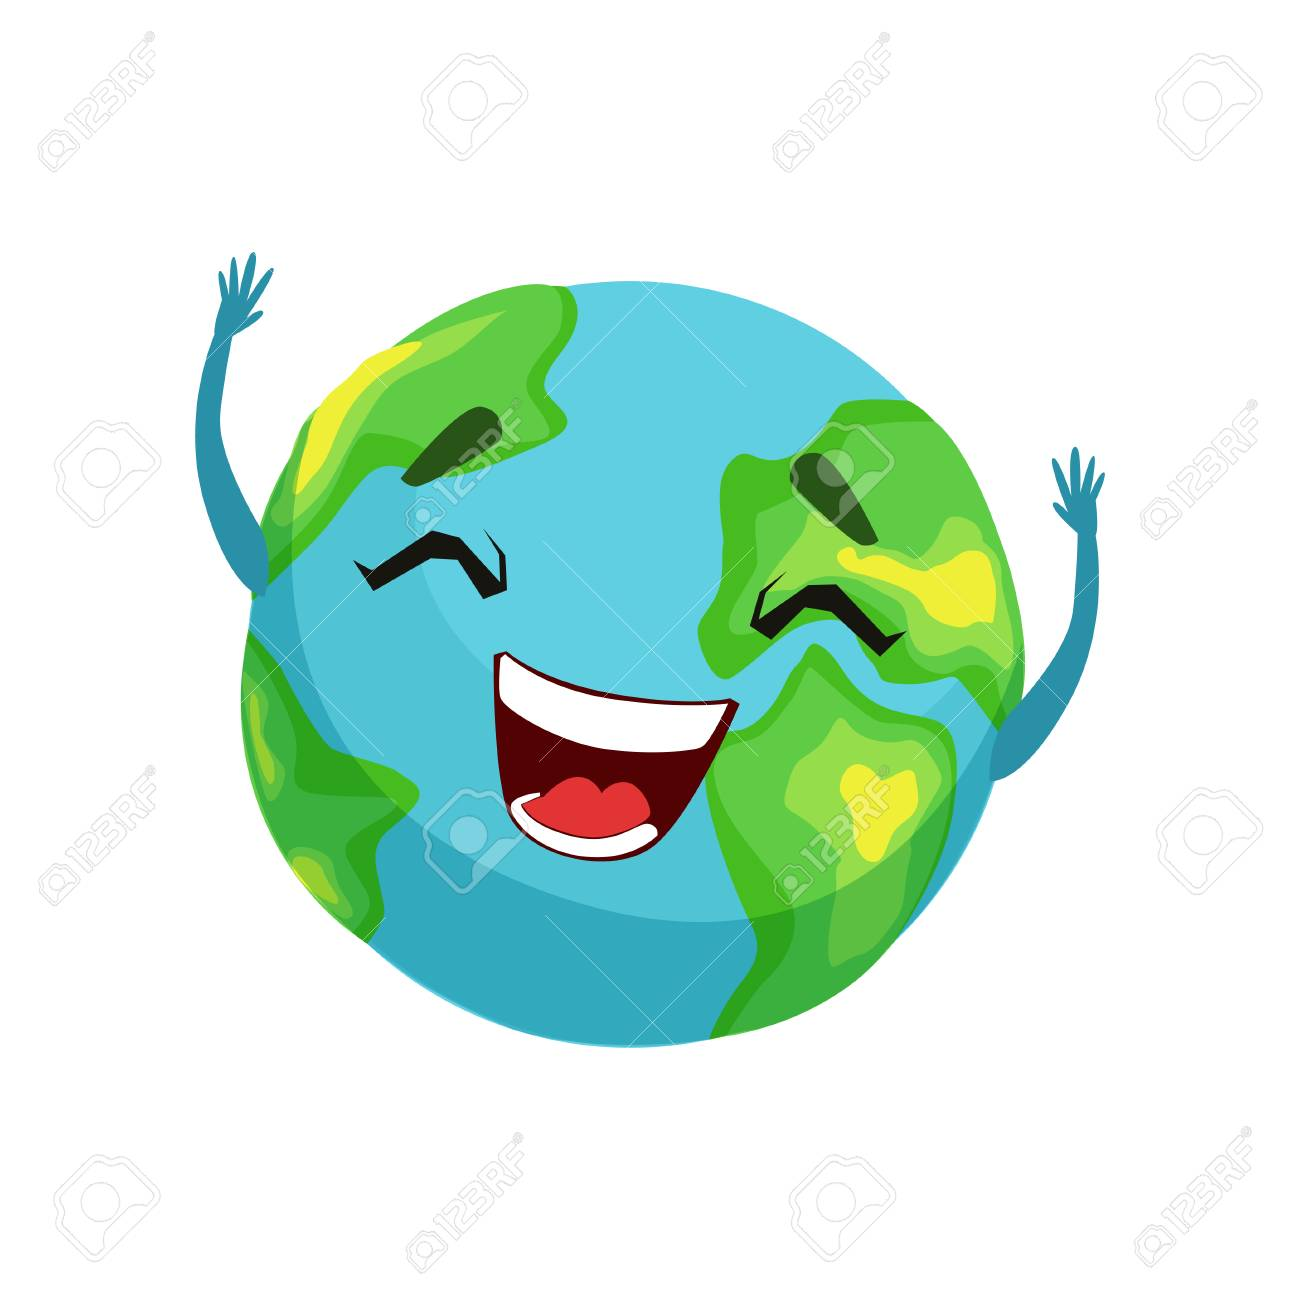 Happy Earth planet character, cute globe with smiley face and hands vector Illustration - 90546027